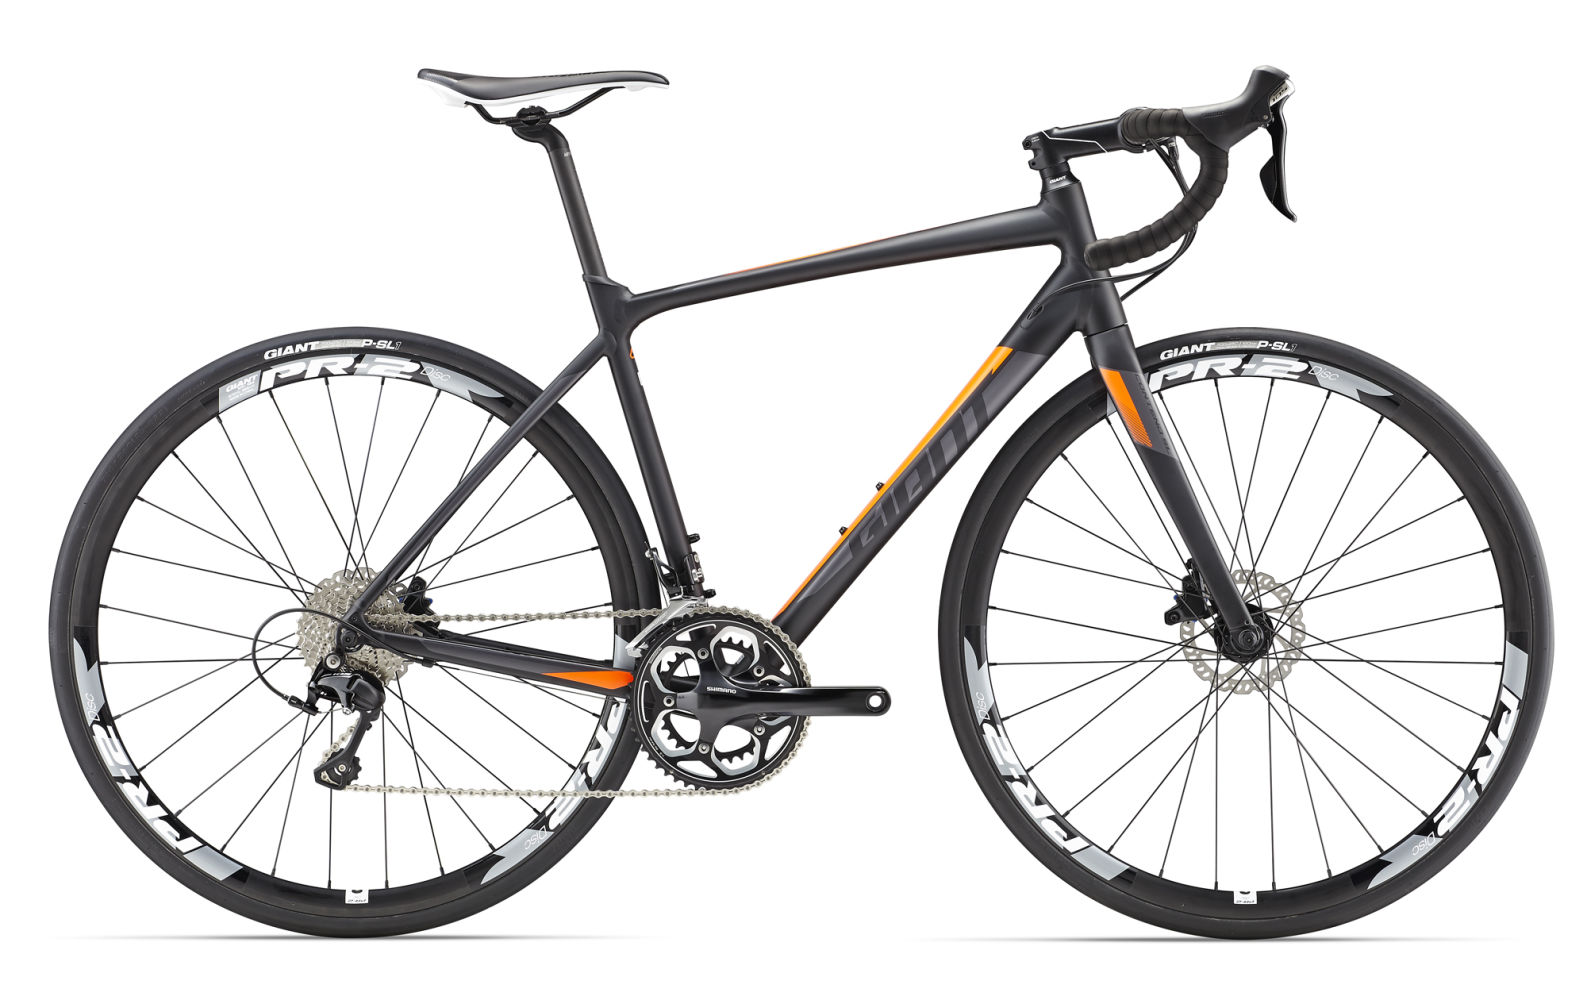 2c3e62c4fe8 The 2017 Contend SL 1 Disc in Black. Availability varies by country.